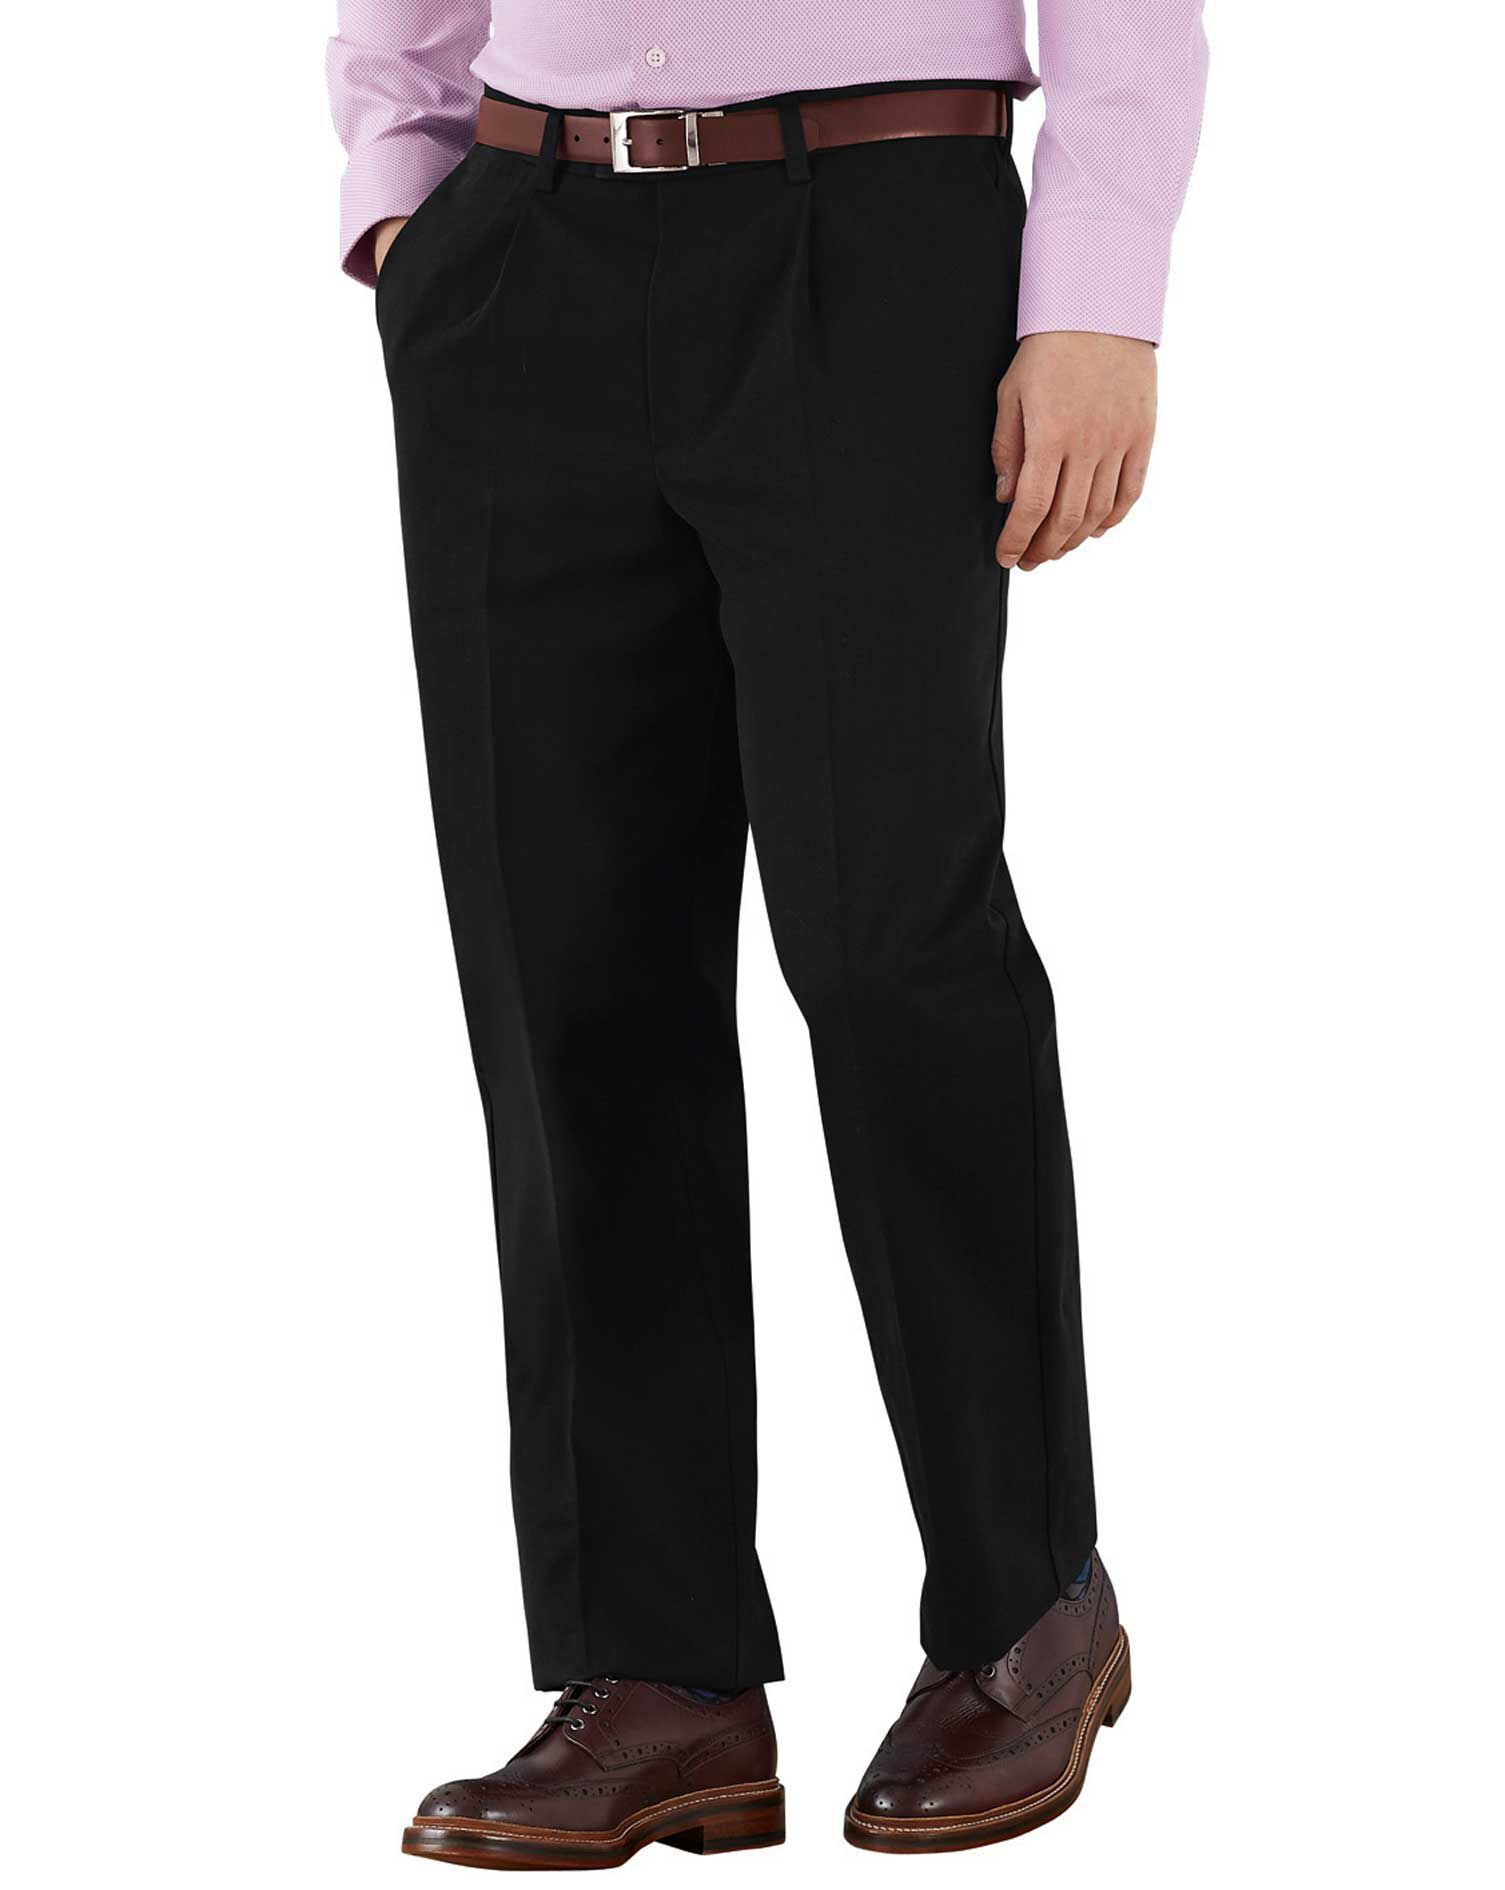 Black Classic Fit Single Pleat Non-Iron Cotton Chino Trousers Size W40 L32 by Charles Tyrwhitt